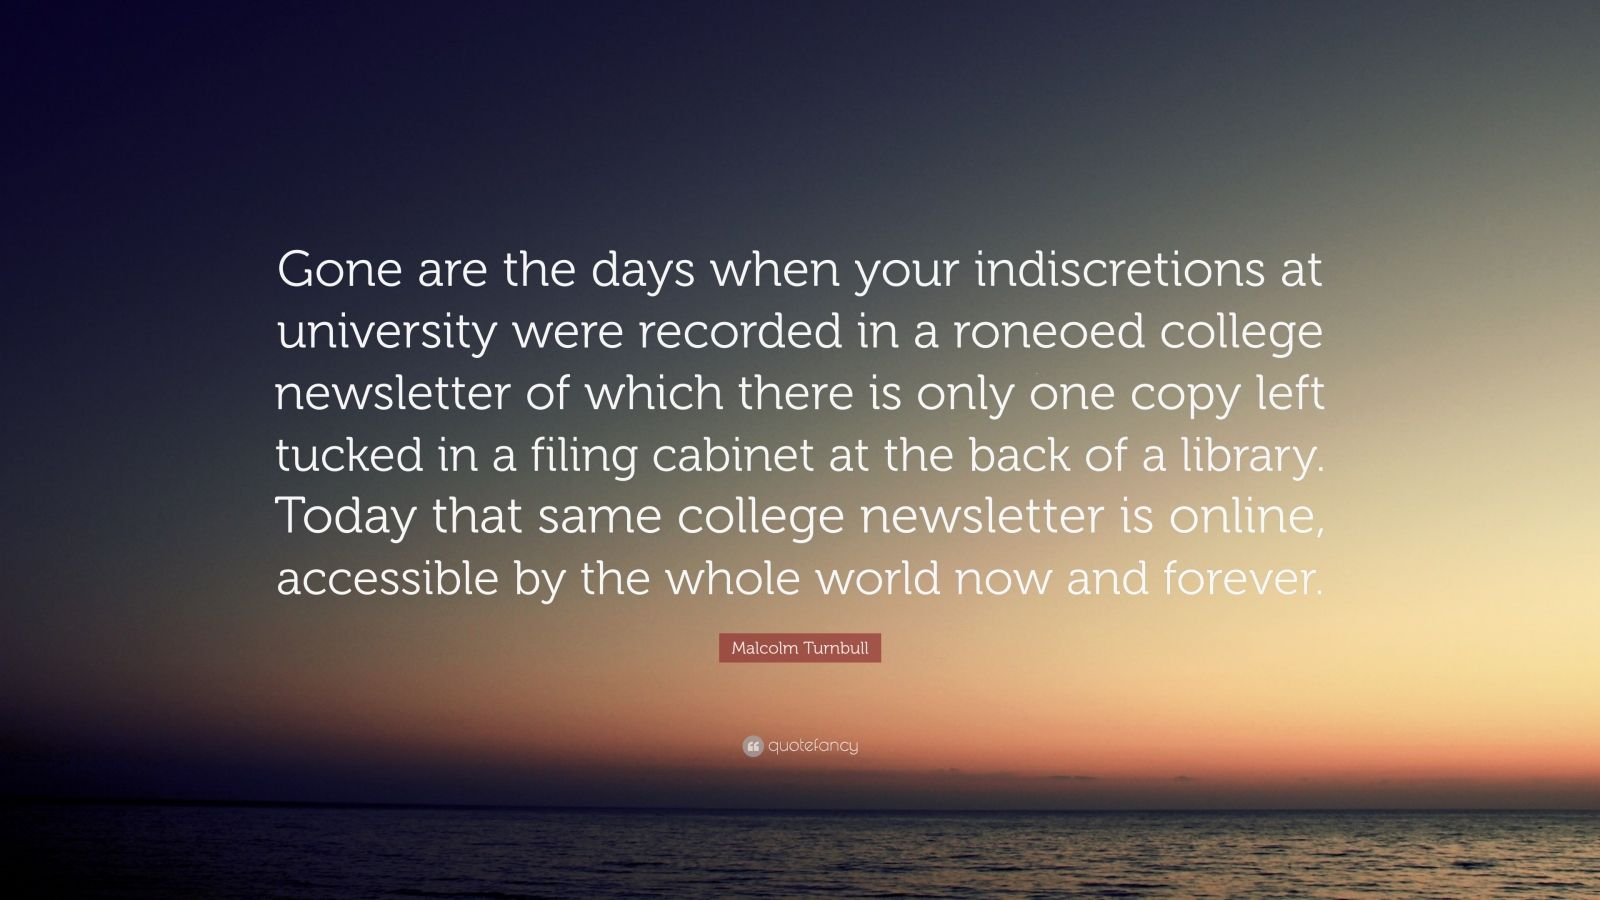 """Malcolm Turnbull Quote: """"Gone are the days when your indiscretions at university were recorded in a roneoed college newsletter of which there is only one copy left tucked in a filing cabinet at the back of a library. Today that same college newsletter is online, accessible by the whole world now and forever."""""""